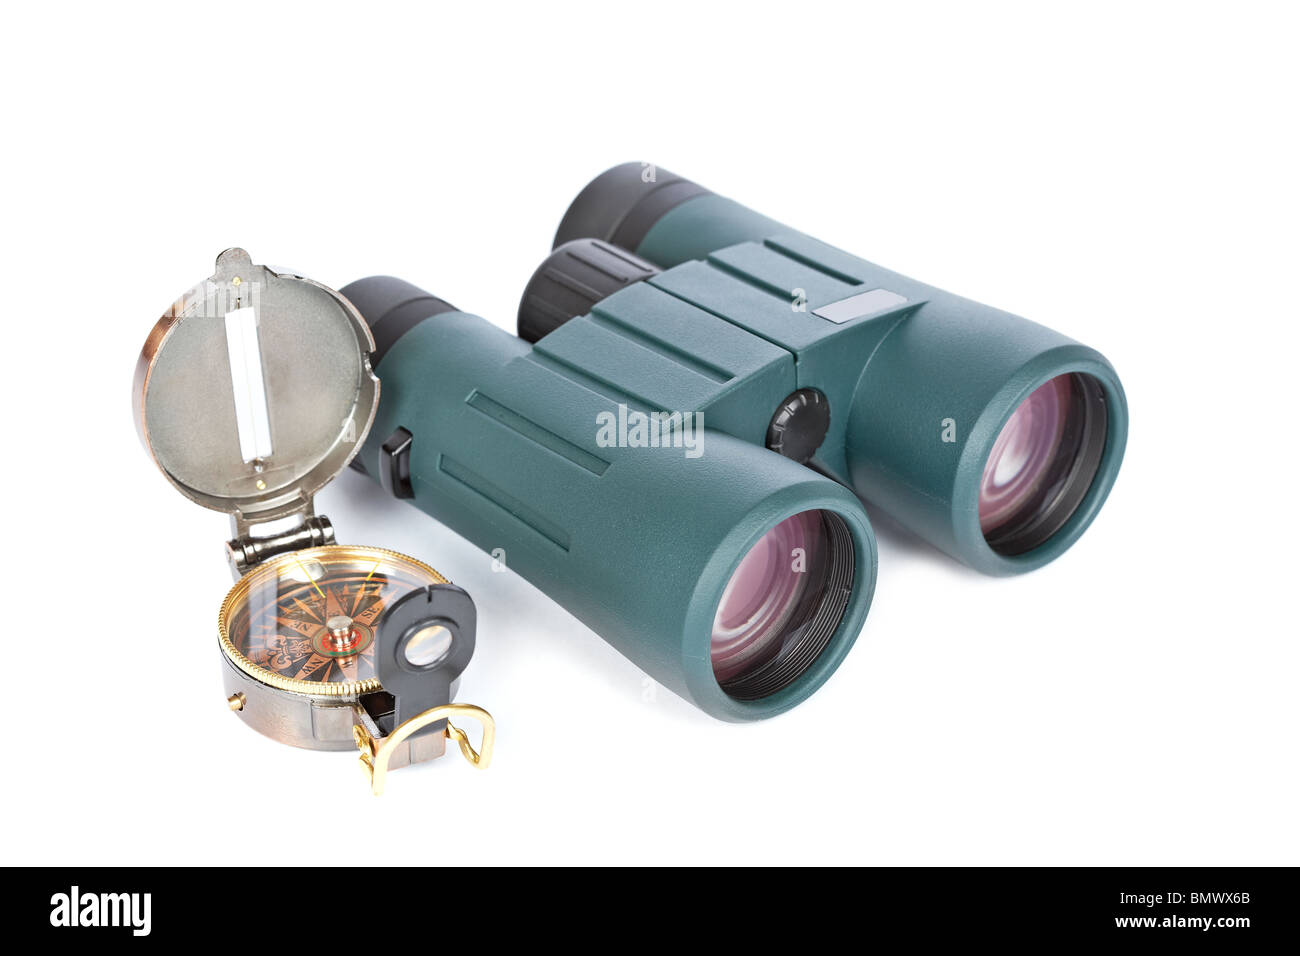 Compass and green binoculars on a white background. Shallow depth of field - Stock Image